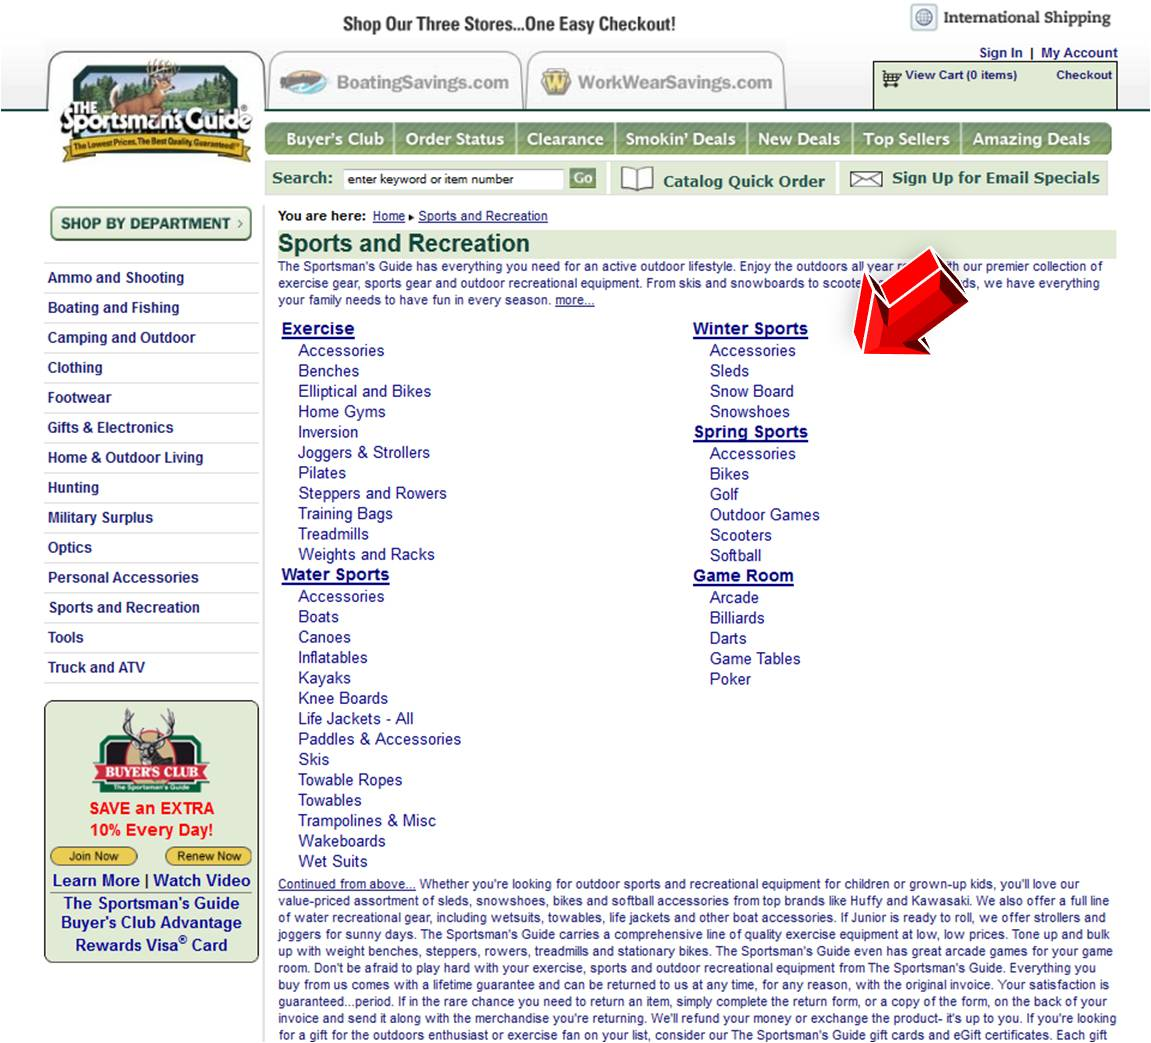 Get exclusive herelfilesvj4.cf coupon codes & discounts when you join the herelfilesvj4.cf email list Ends Dec. 31, Get geared up for the great outdoors by shopping for essential equipment and apparel at herelfilesvj4.cf Email list members are saving a fortune with marked-down prices on top-quality ski boots, pullover jackets and snowboards.